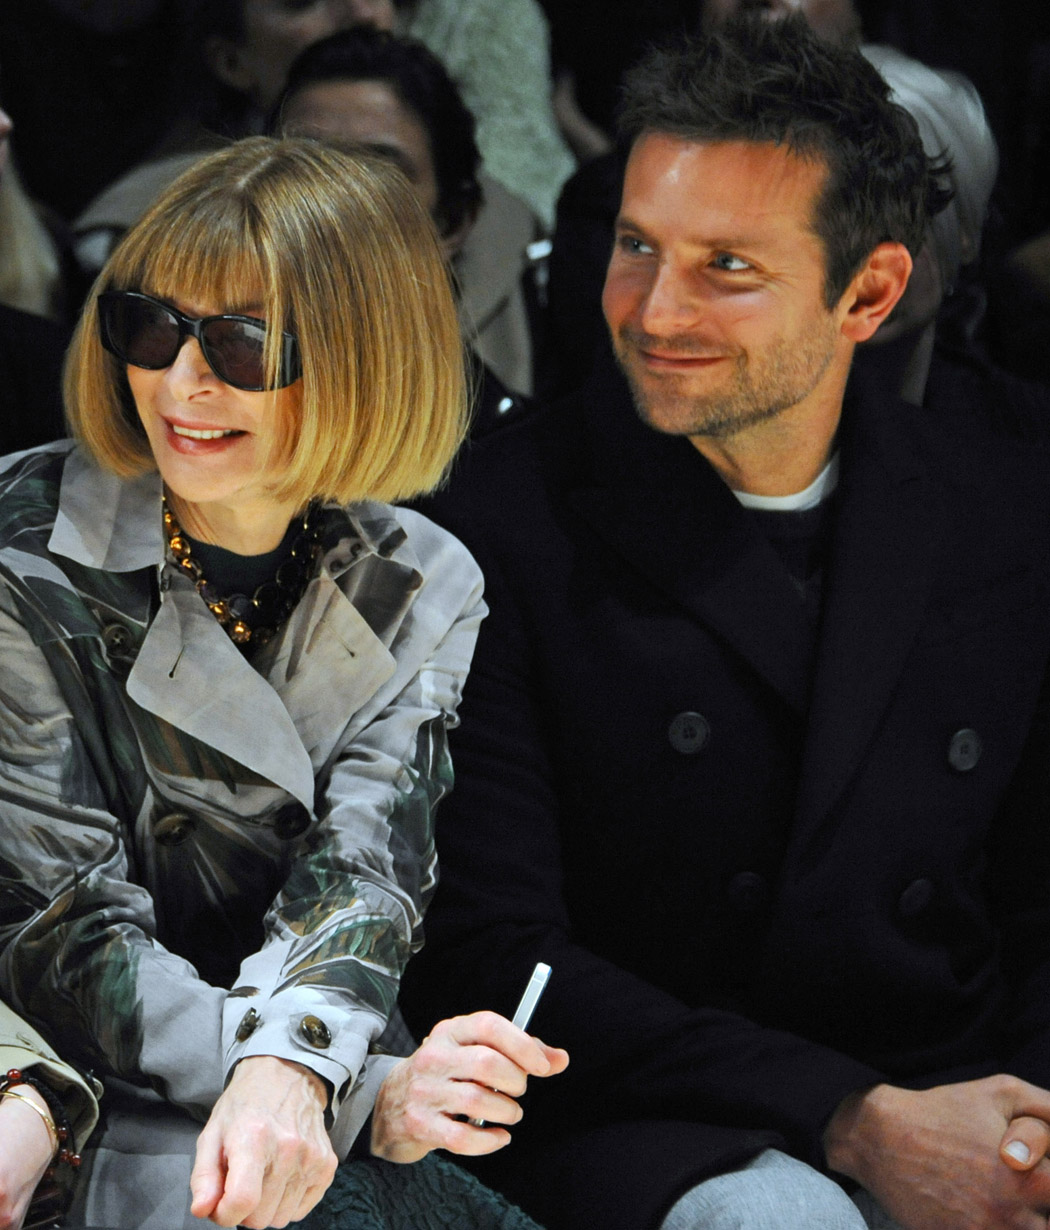 Anna-Wintour-and-Bradley-Cooper-at-the-Burberry-Prorsum-Womenswear-Autumn_Winter-2014-Show-in-Londo_002.jpg